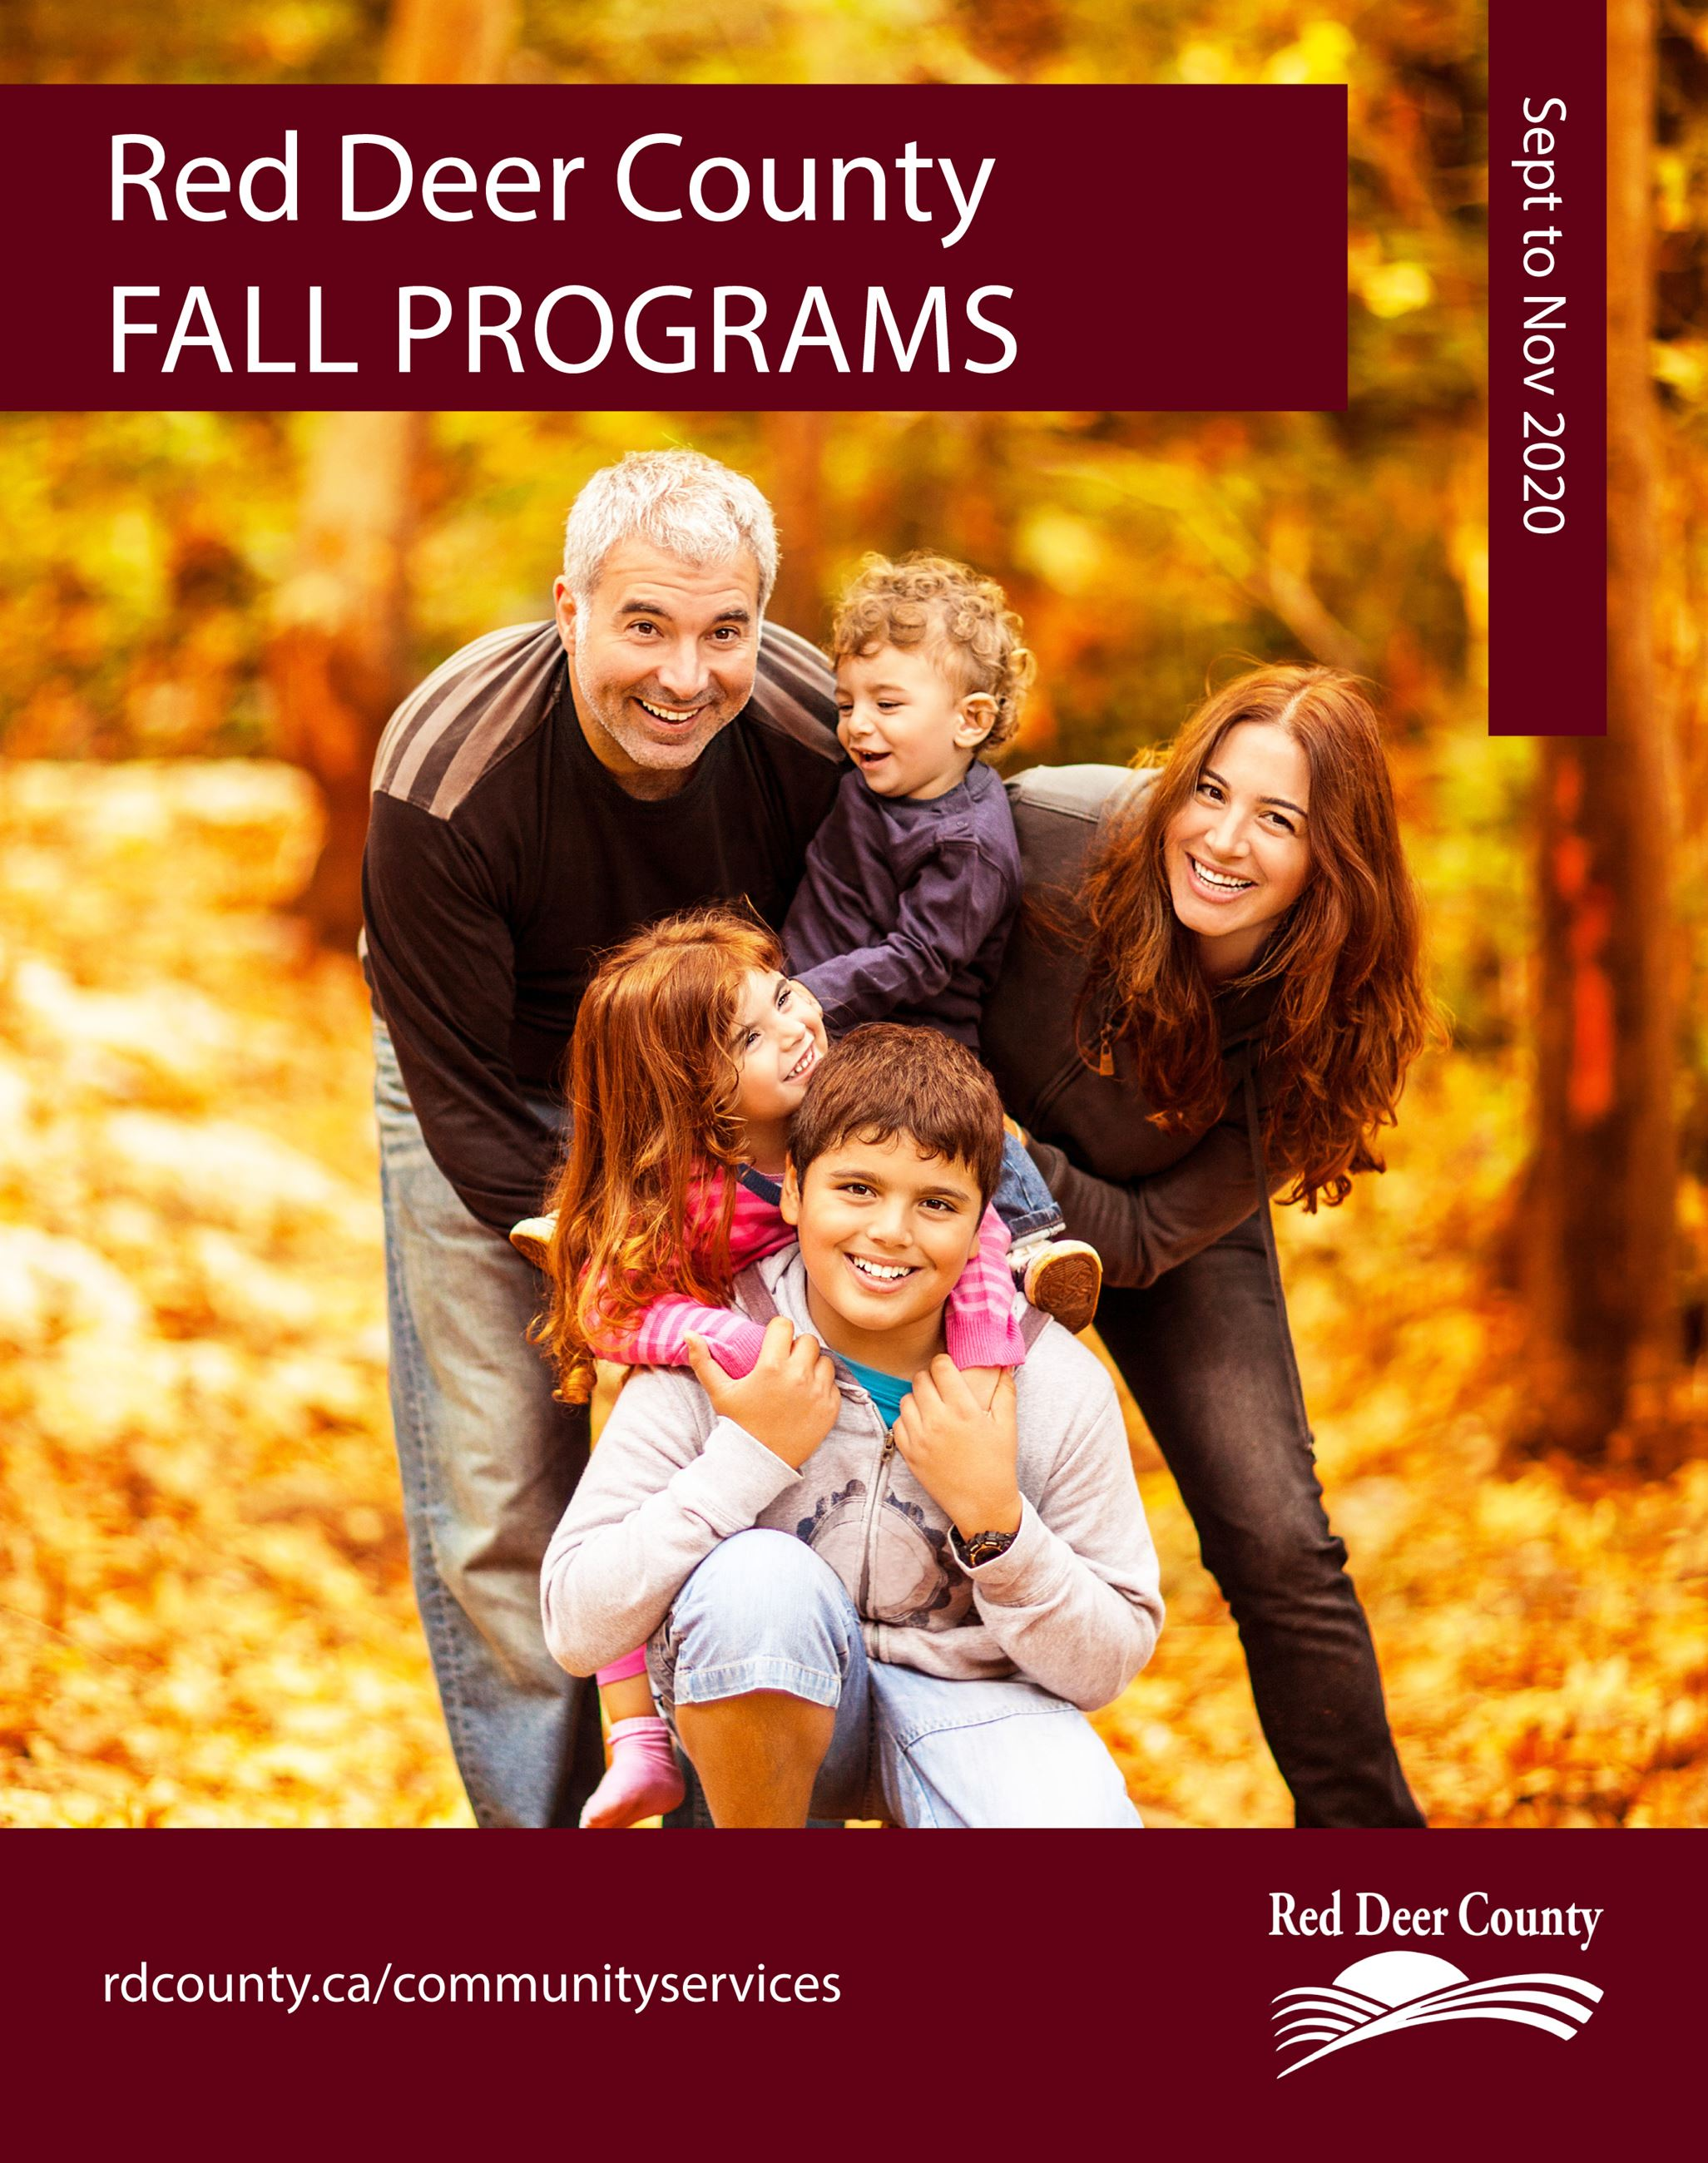 Fall Program guide 2020 - no crops-1 Opens in new window